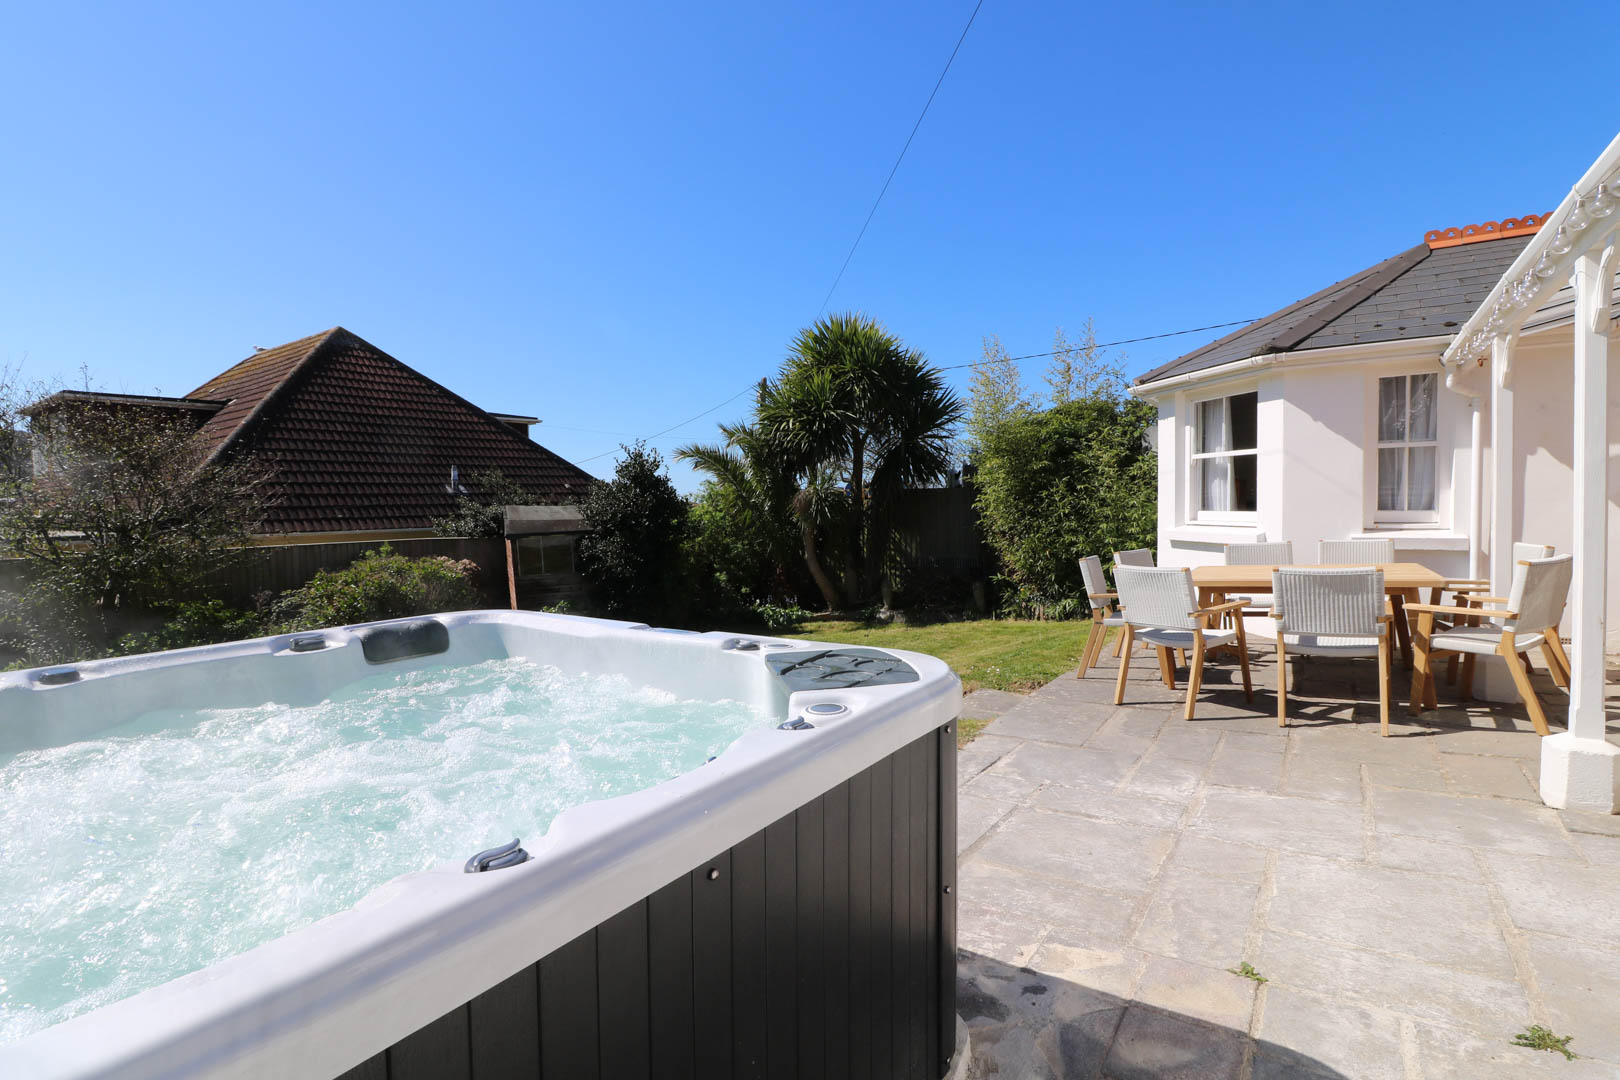 North Devon holiday cottages with large gardens